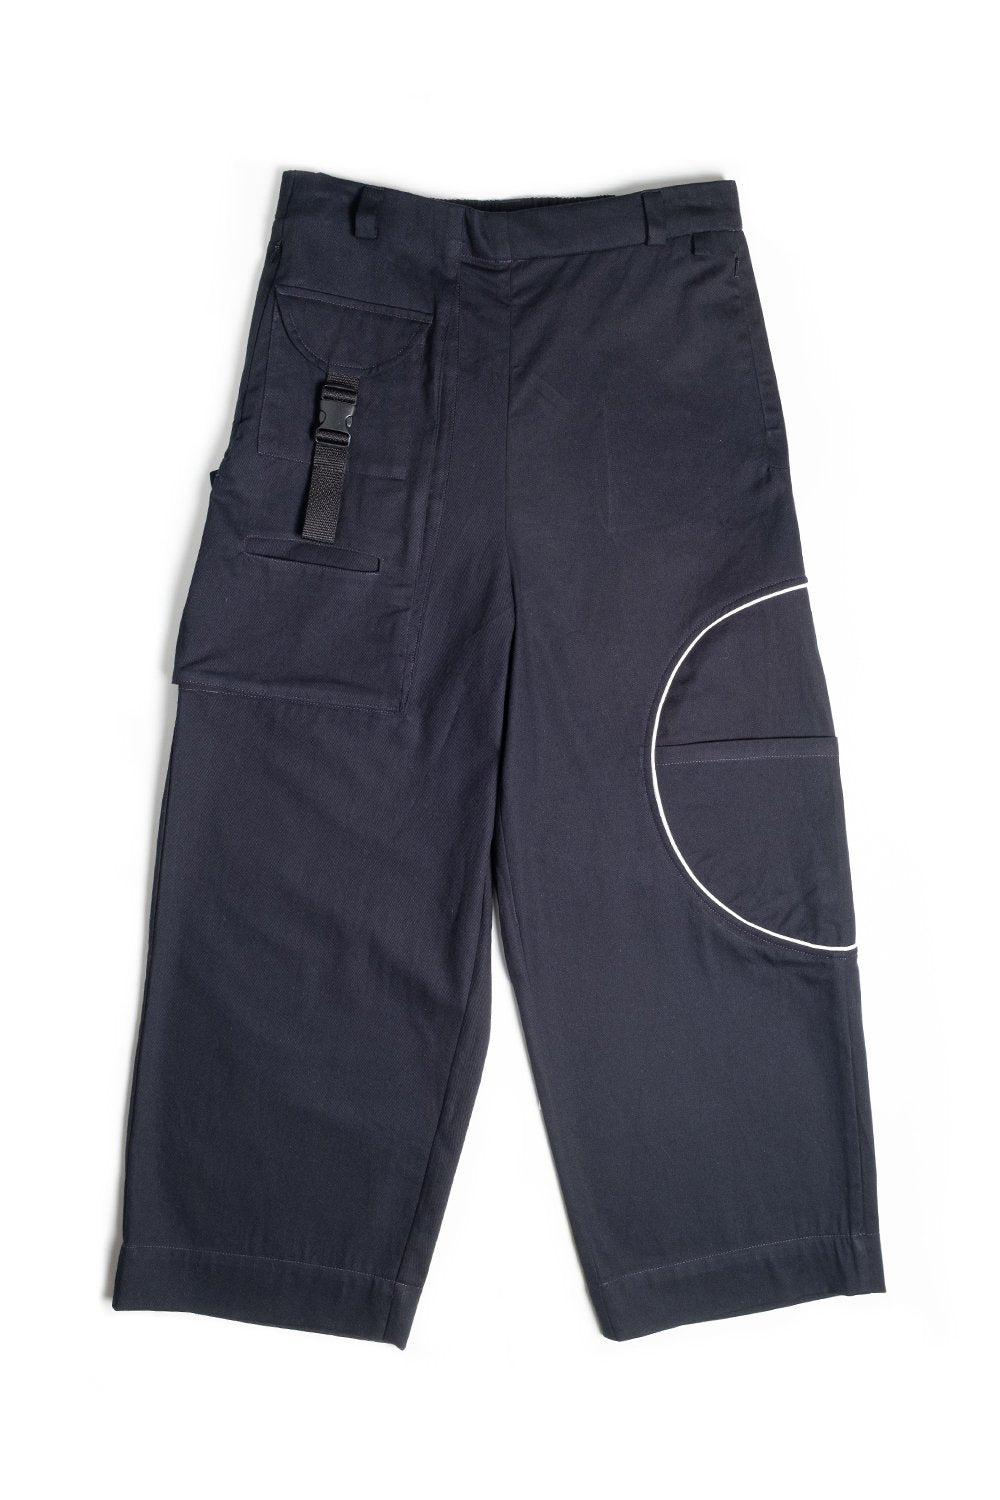 Orbit Blue Eclipse Pants - BISKIT